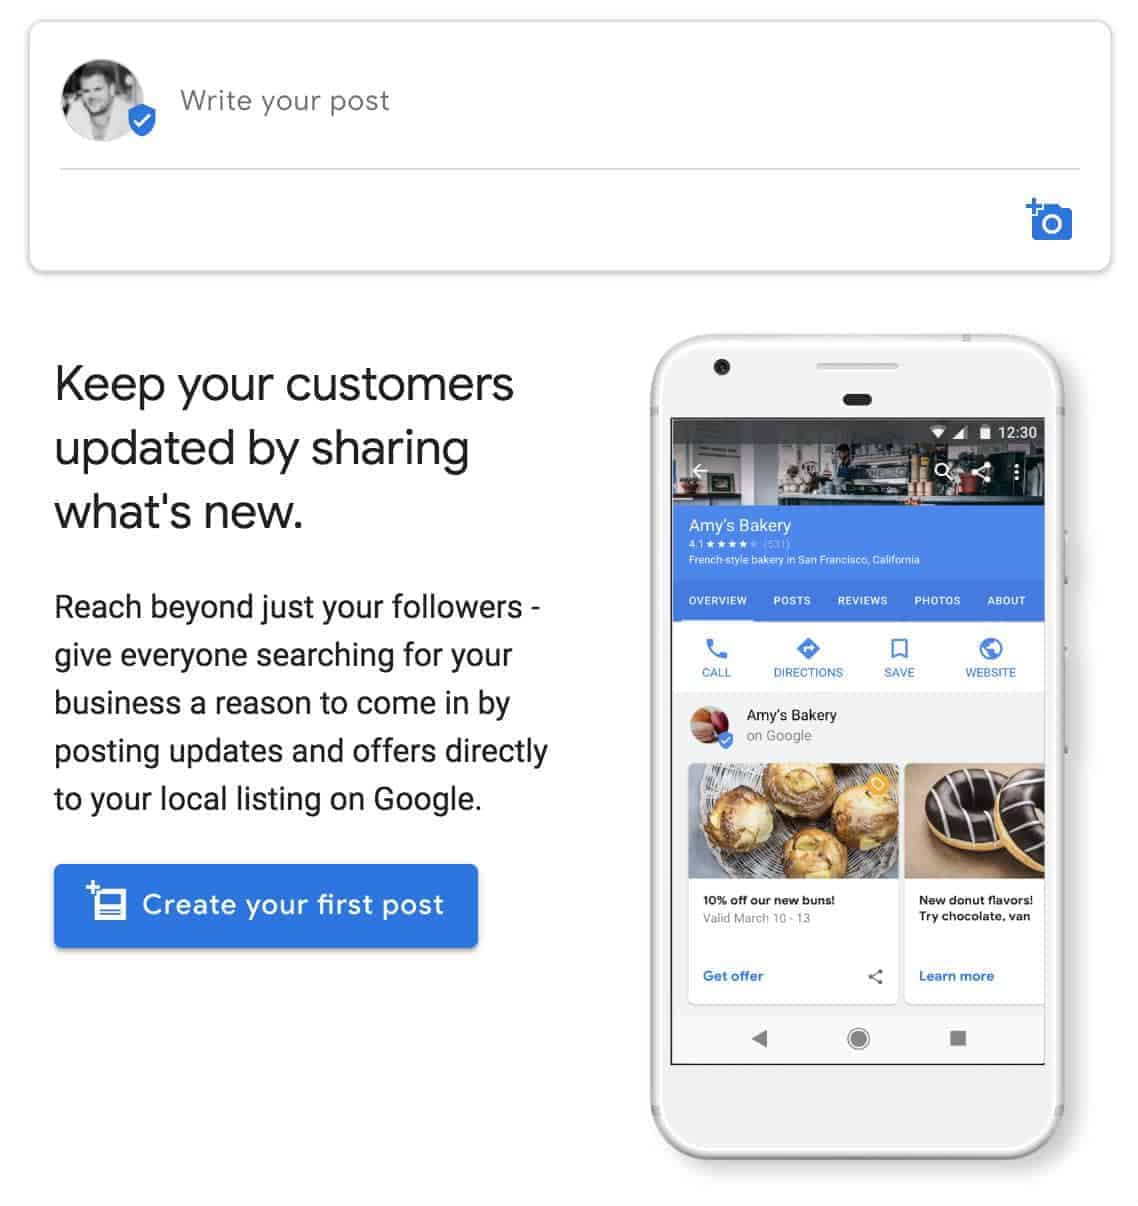 Write-a-post-on-Google-My-Business